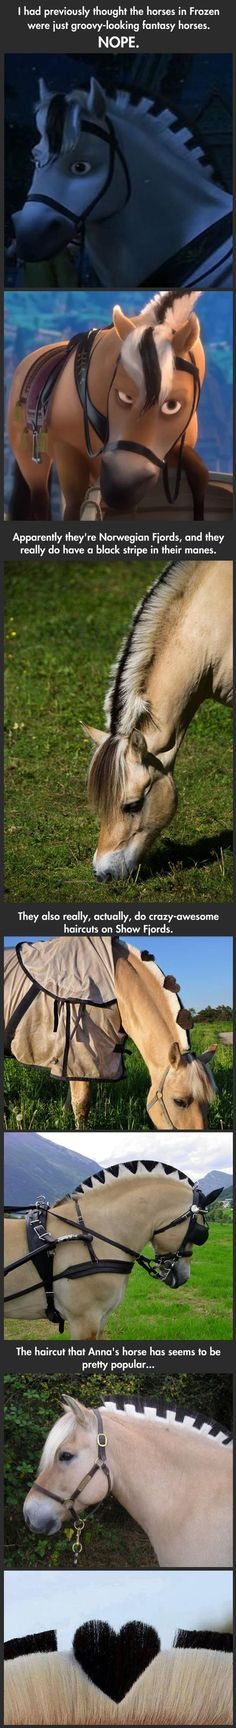 I show horses and my best friend has one of these. Not only are they cool looking but they are super duper sweet